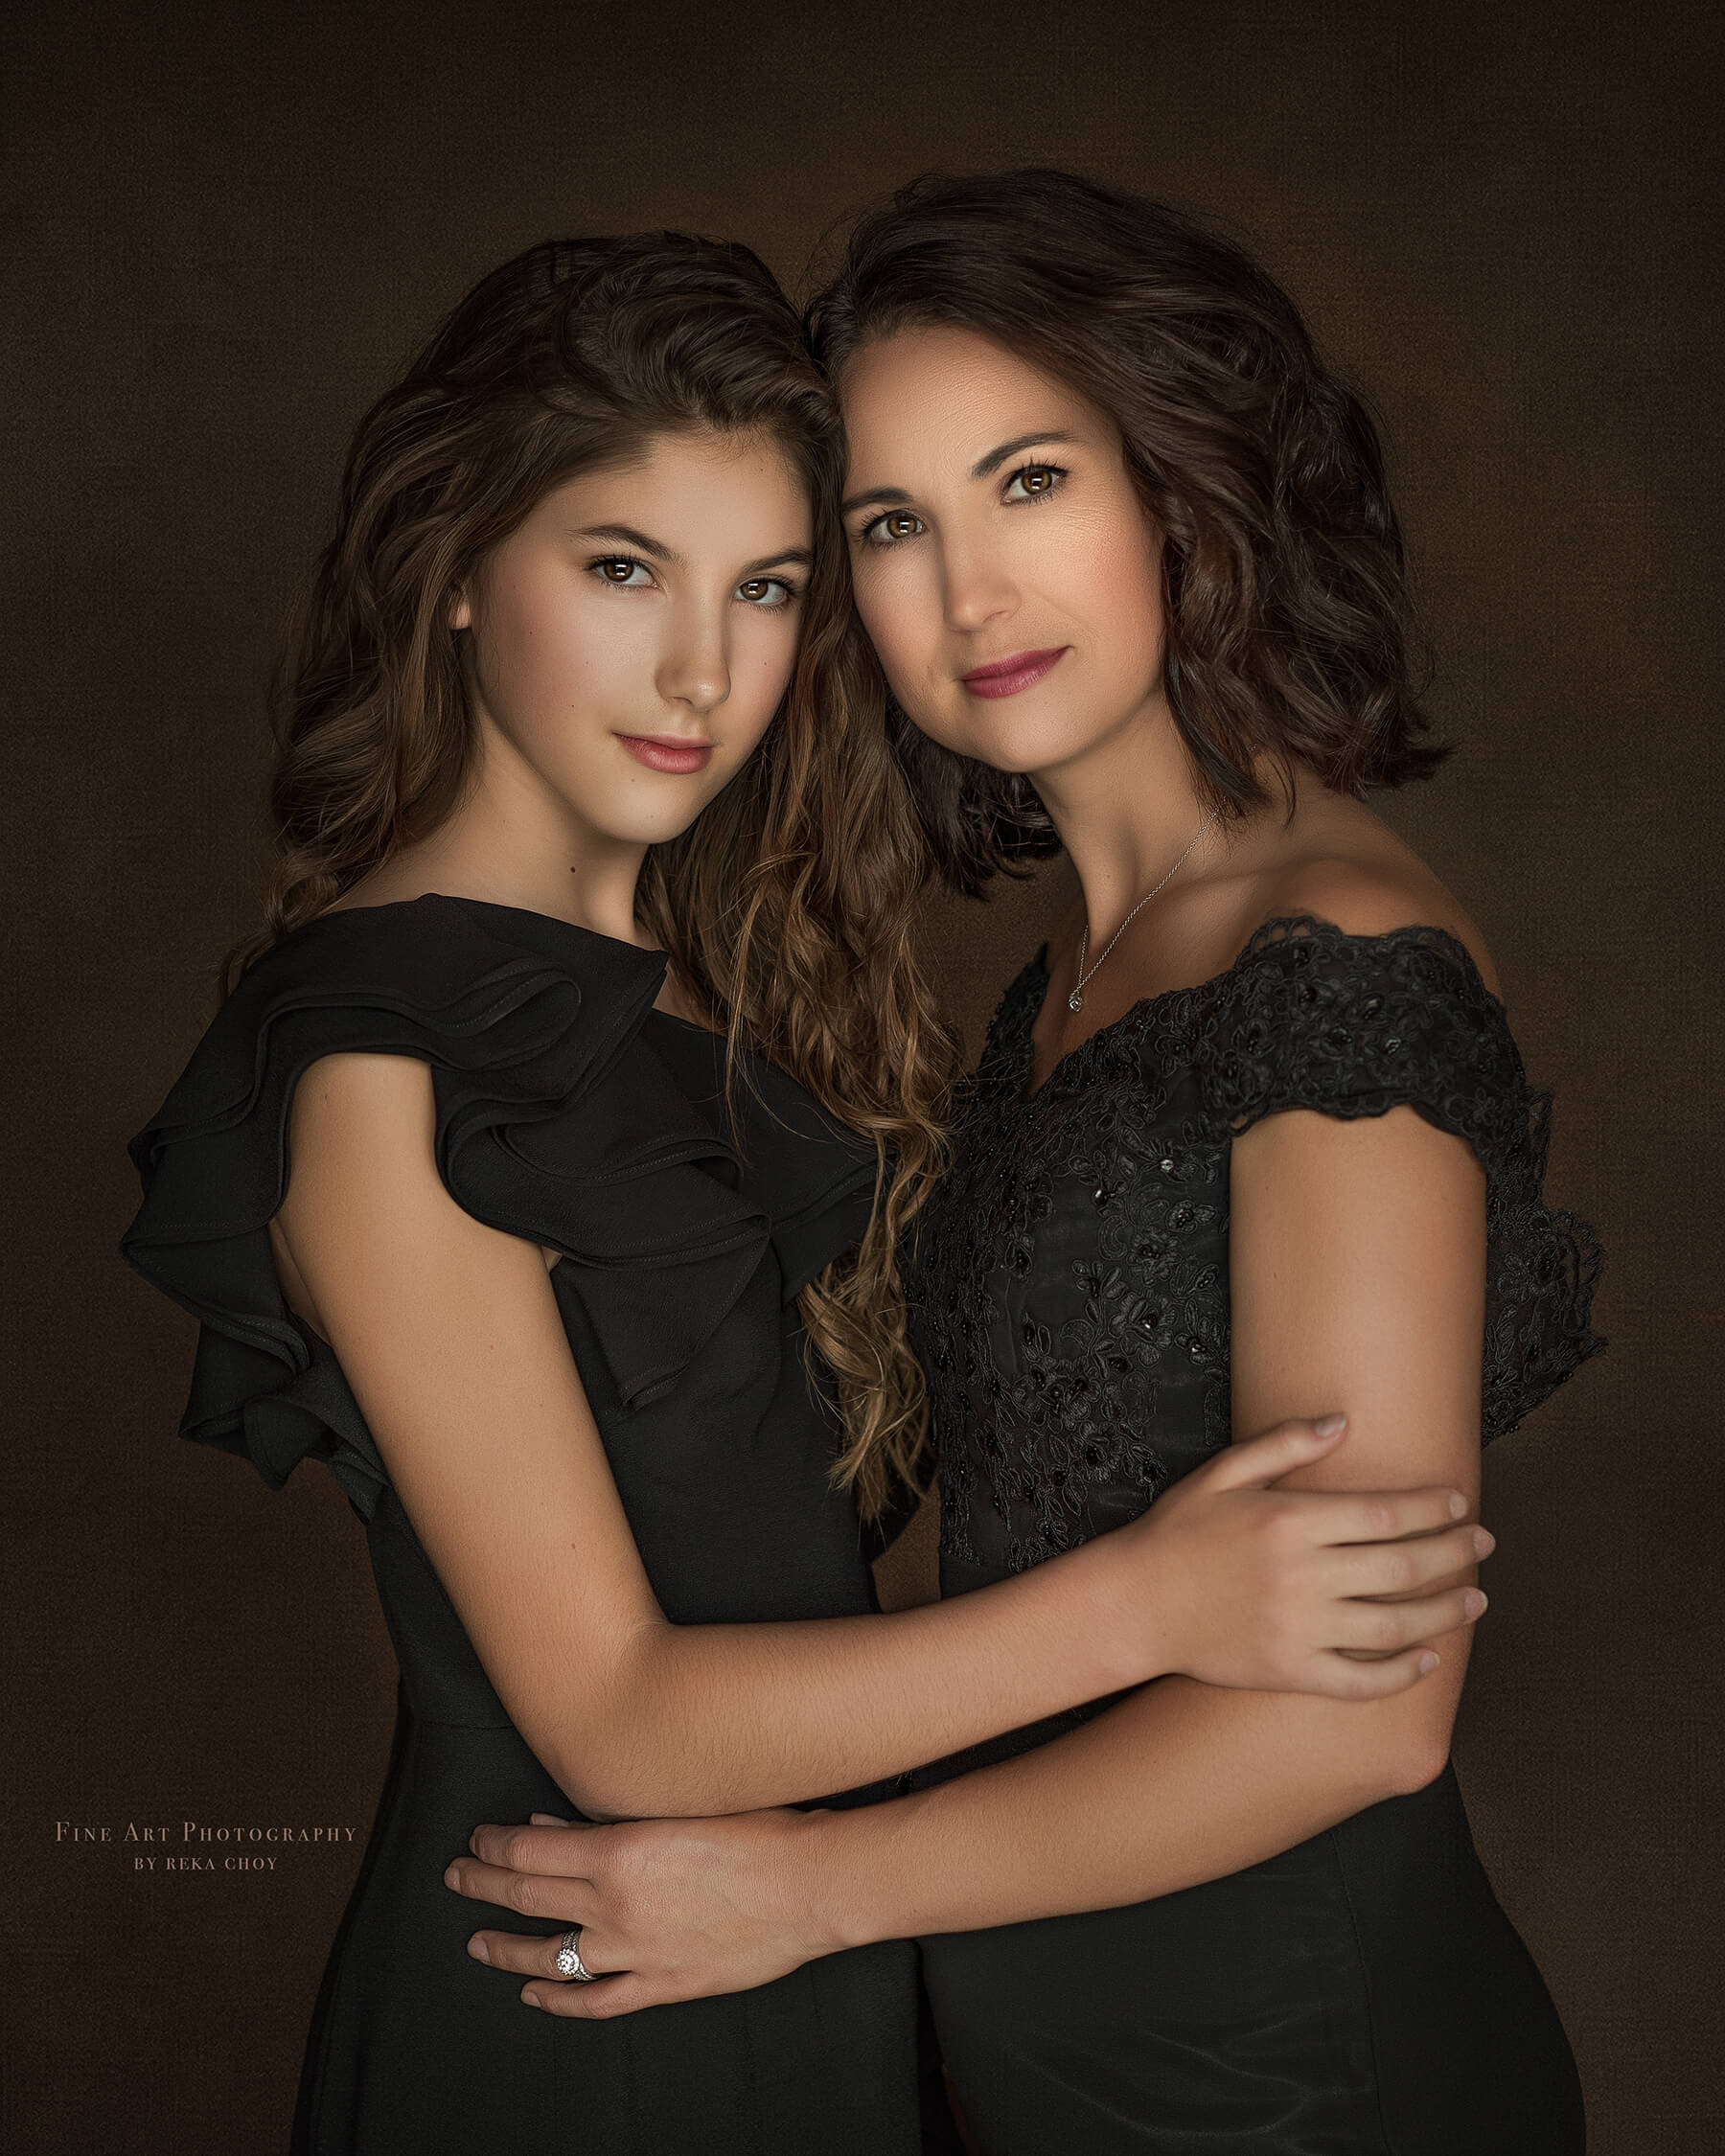 mother and daughter posing for a fine art portrait both dresses in black dress with their hair curled